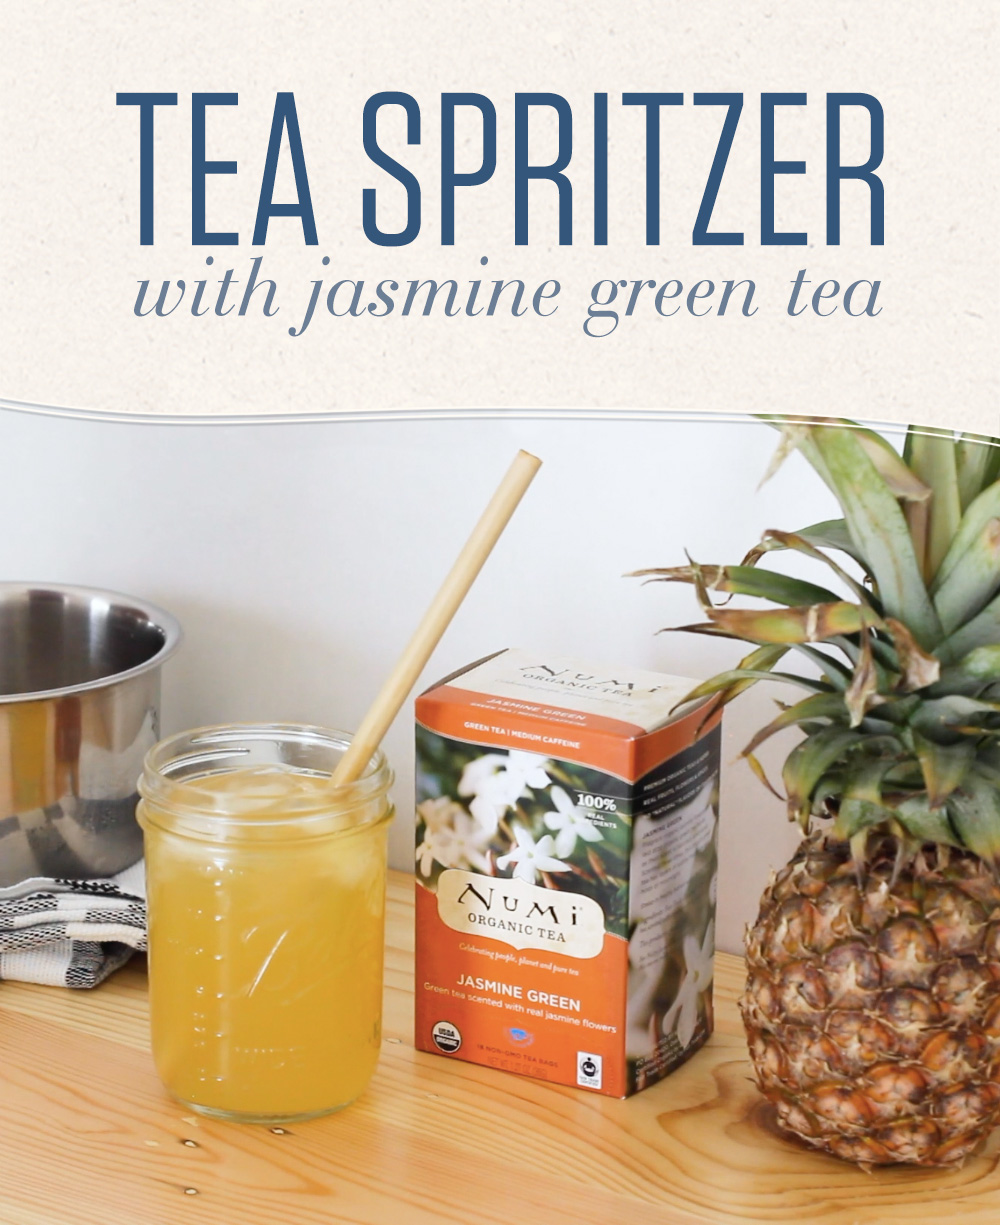 Jasmine Green Tea Spritzer